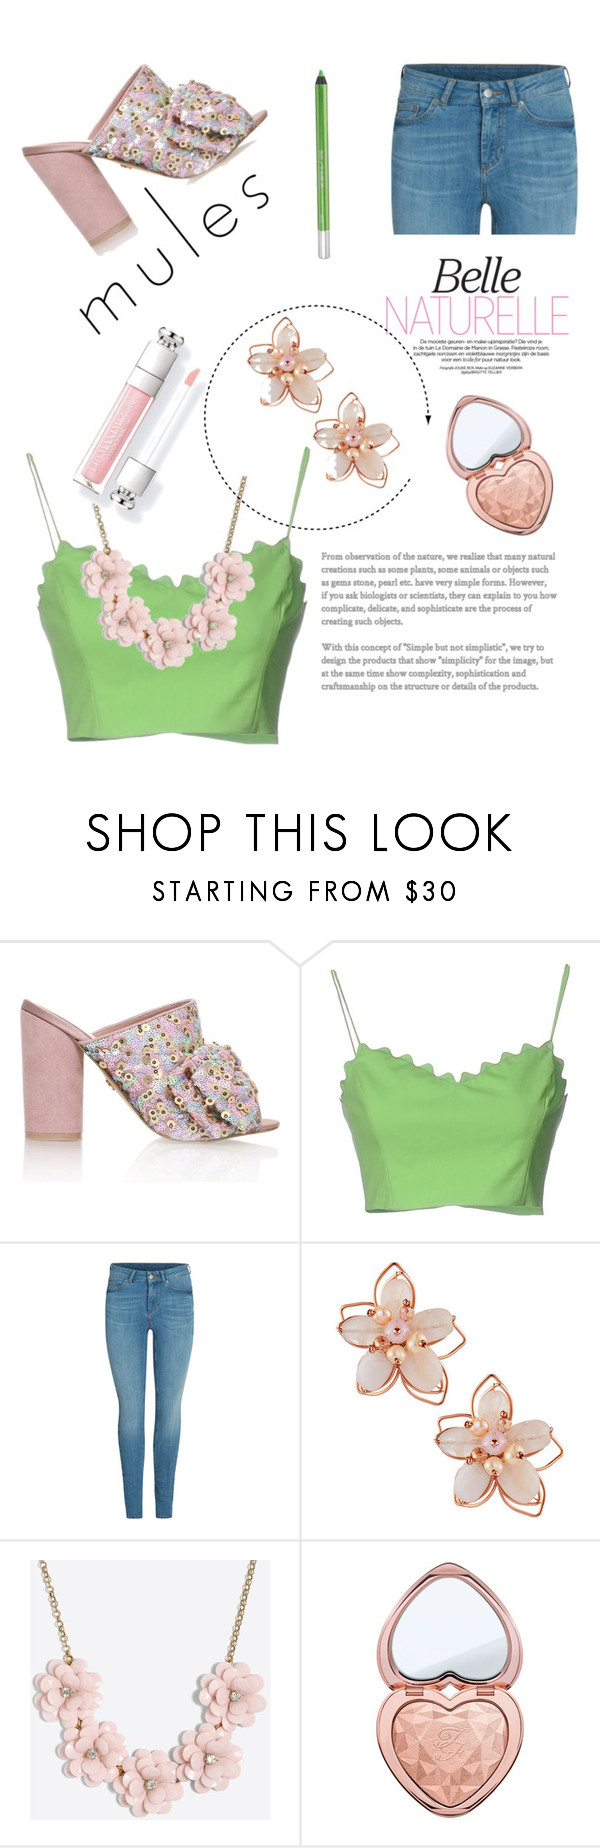 """""""Spring!!"""" by martina-b33 ❤ liked on Polyvore featuring KG Kurt Geiger, Moschino Cheap & Chic, NAKAMOL, J.Crew, Too Faced Cosmetics and Urban Decay"""